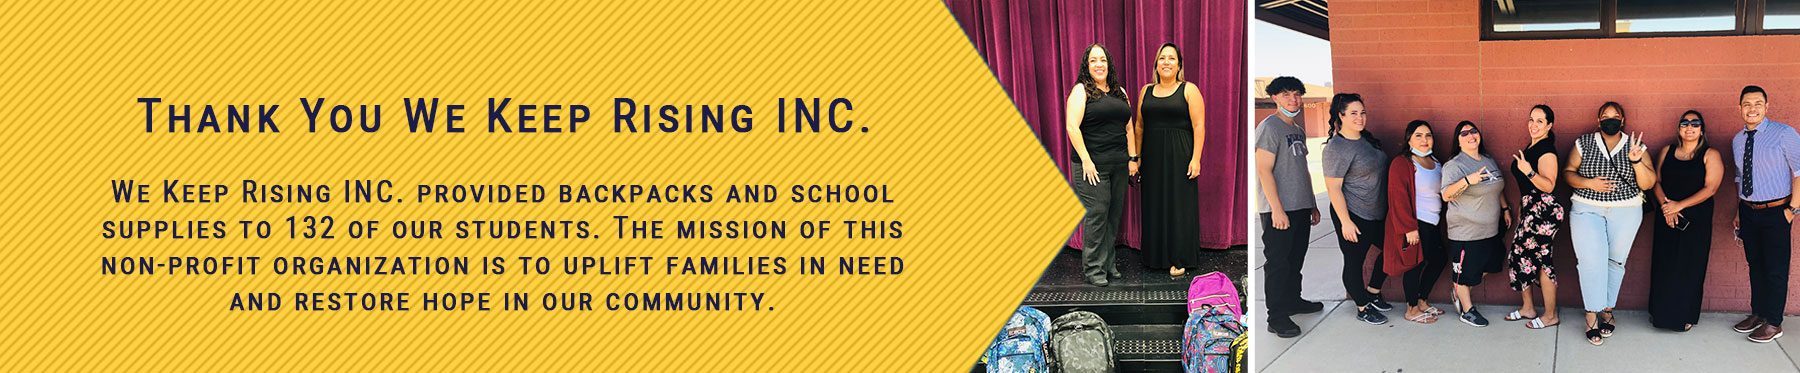 Thank You We Keep Rising INC. We Keep Rising INC. provided backpacks and school supplies to 132 of our students. The mission of this non-profit organization is to uplift families in need and restore hope in our community.